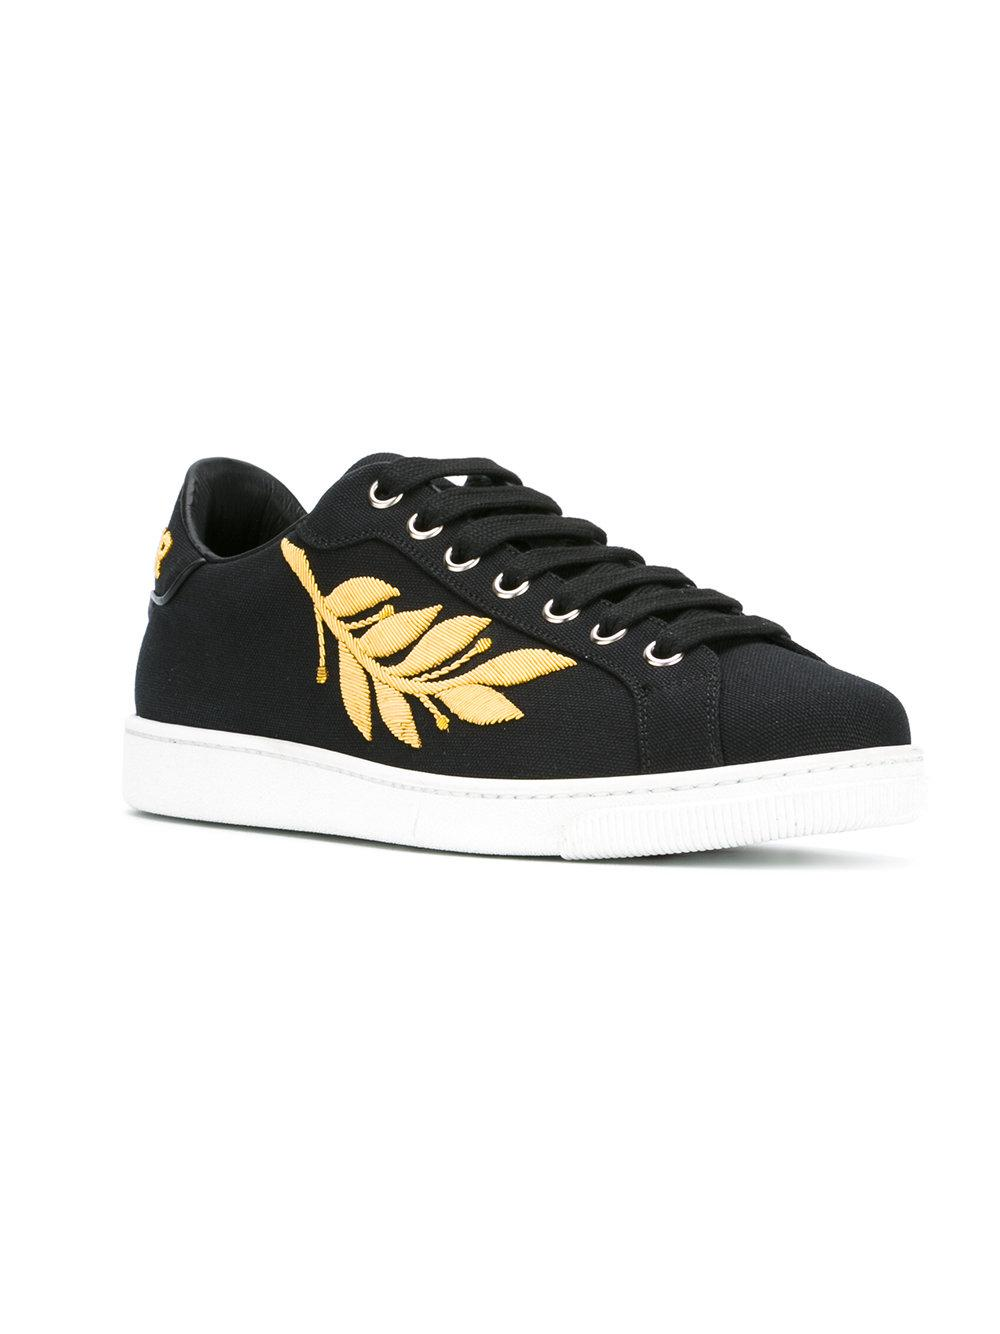 DSquared² Cotton Embroidered Trainers in Black for Men